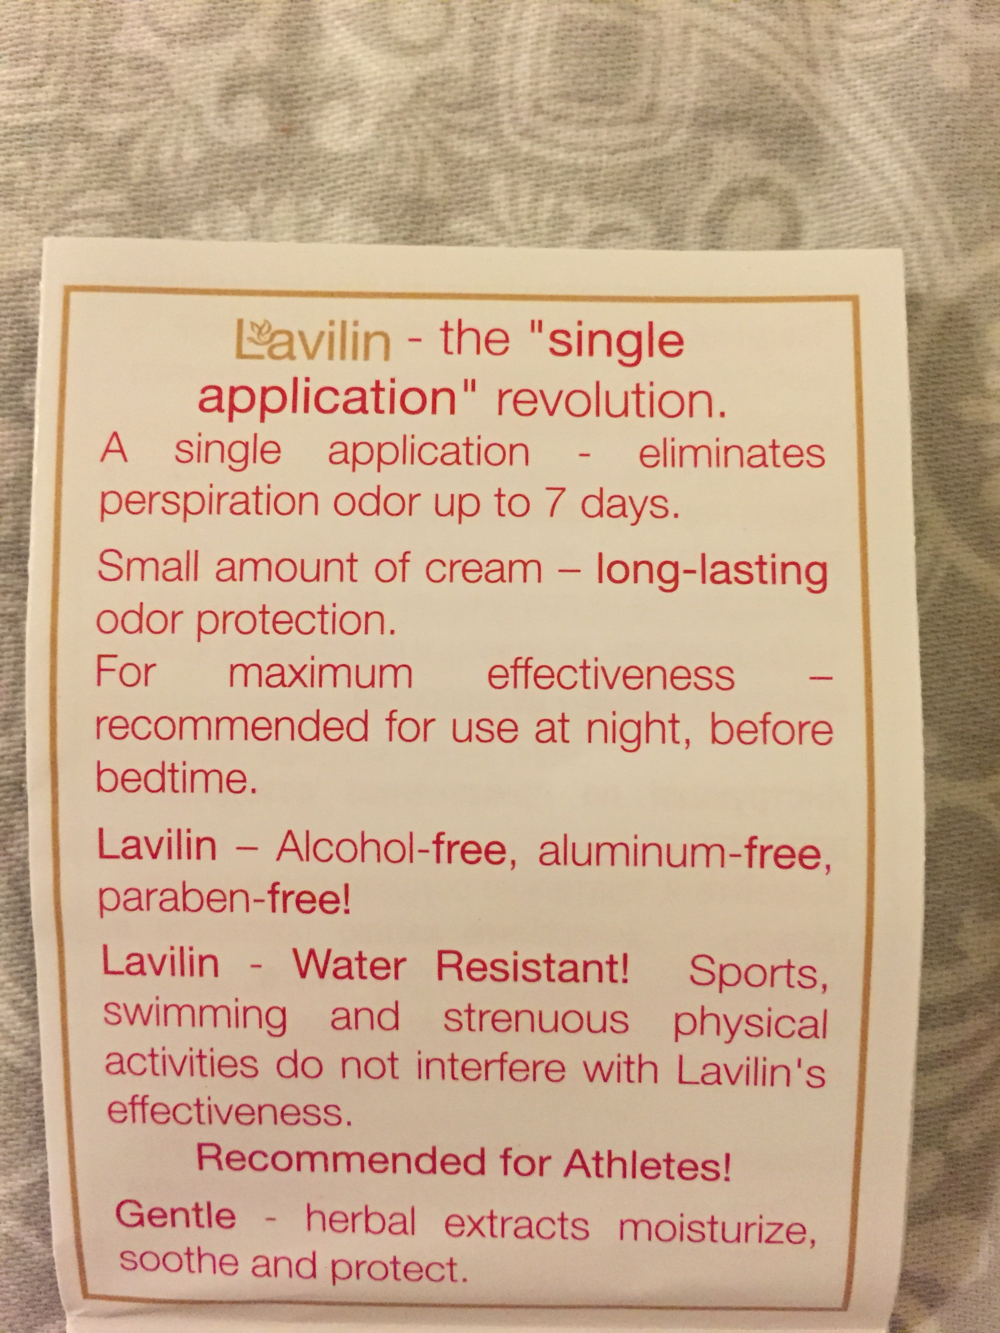 Lavilin claims that, with Lavilin, you will be free of odor for up to 7 days